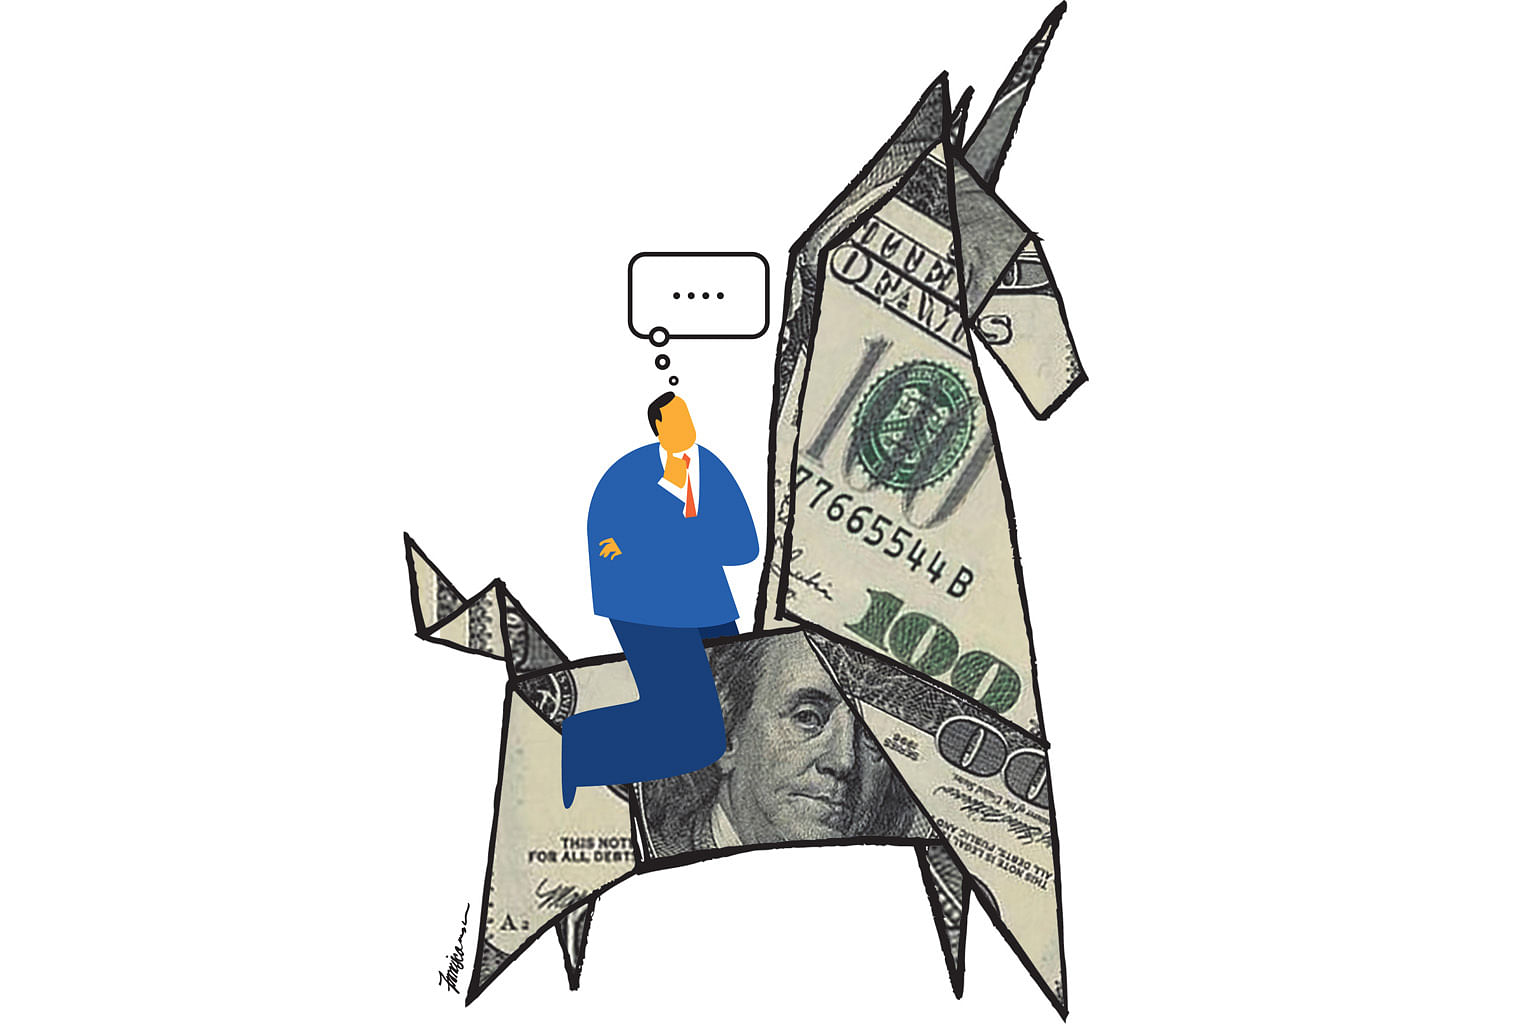 http://www.straitstimes.com/business/invest/investing-in-venture-capital-funds-do-your-homework-first